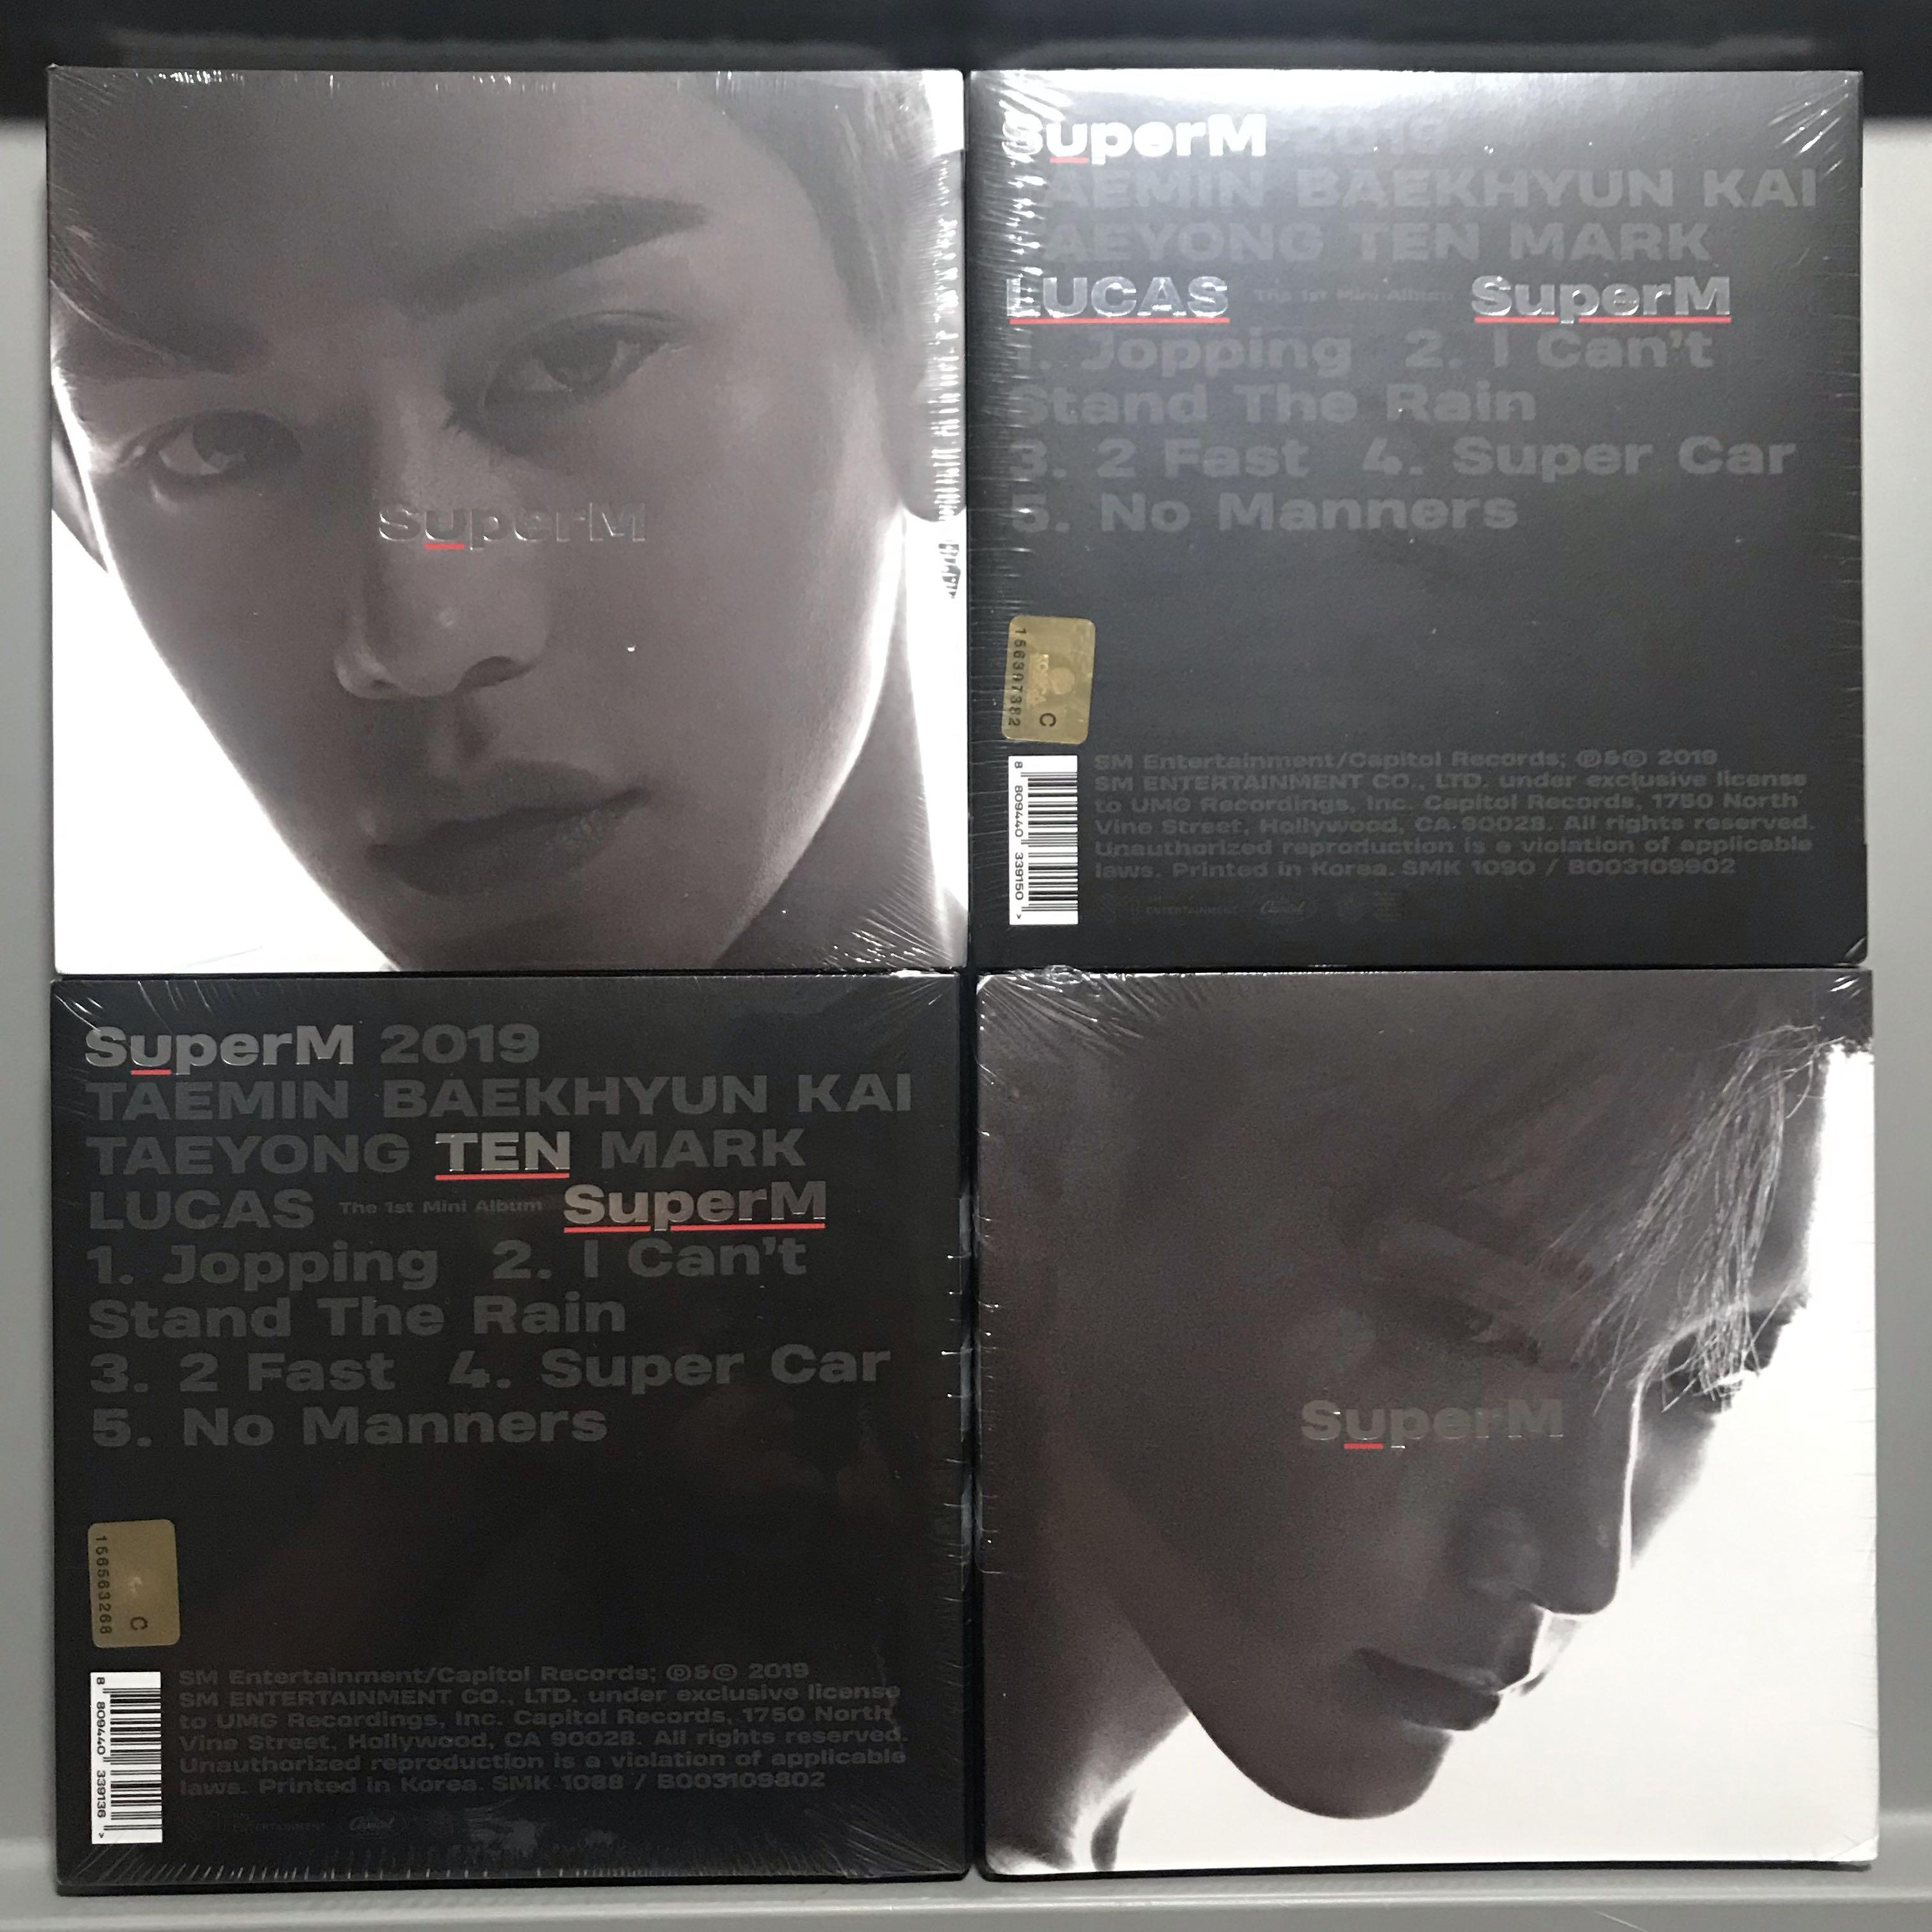 [WTS][READY STOCK]SUPERM ALBUM US VER SEALED 1st PRESS RELEASE